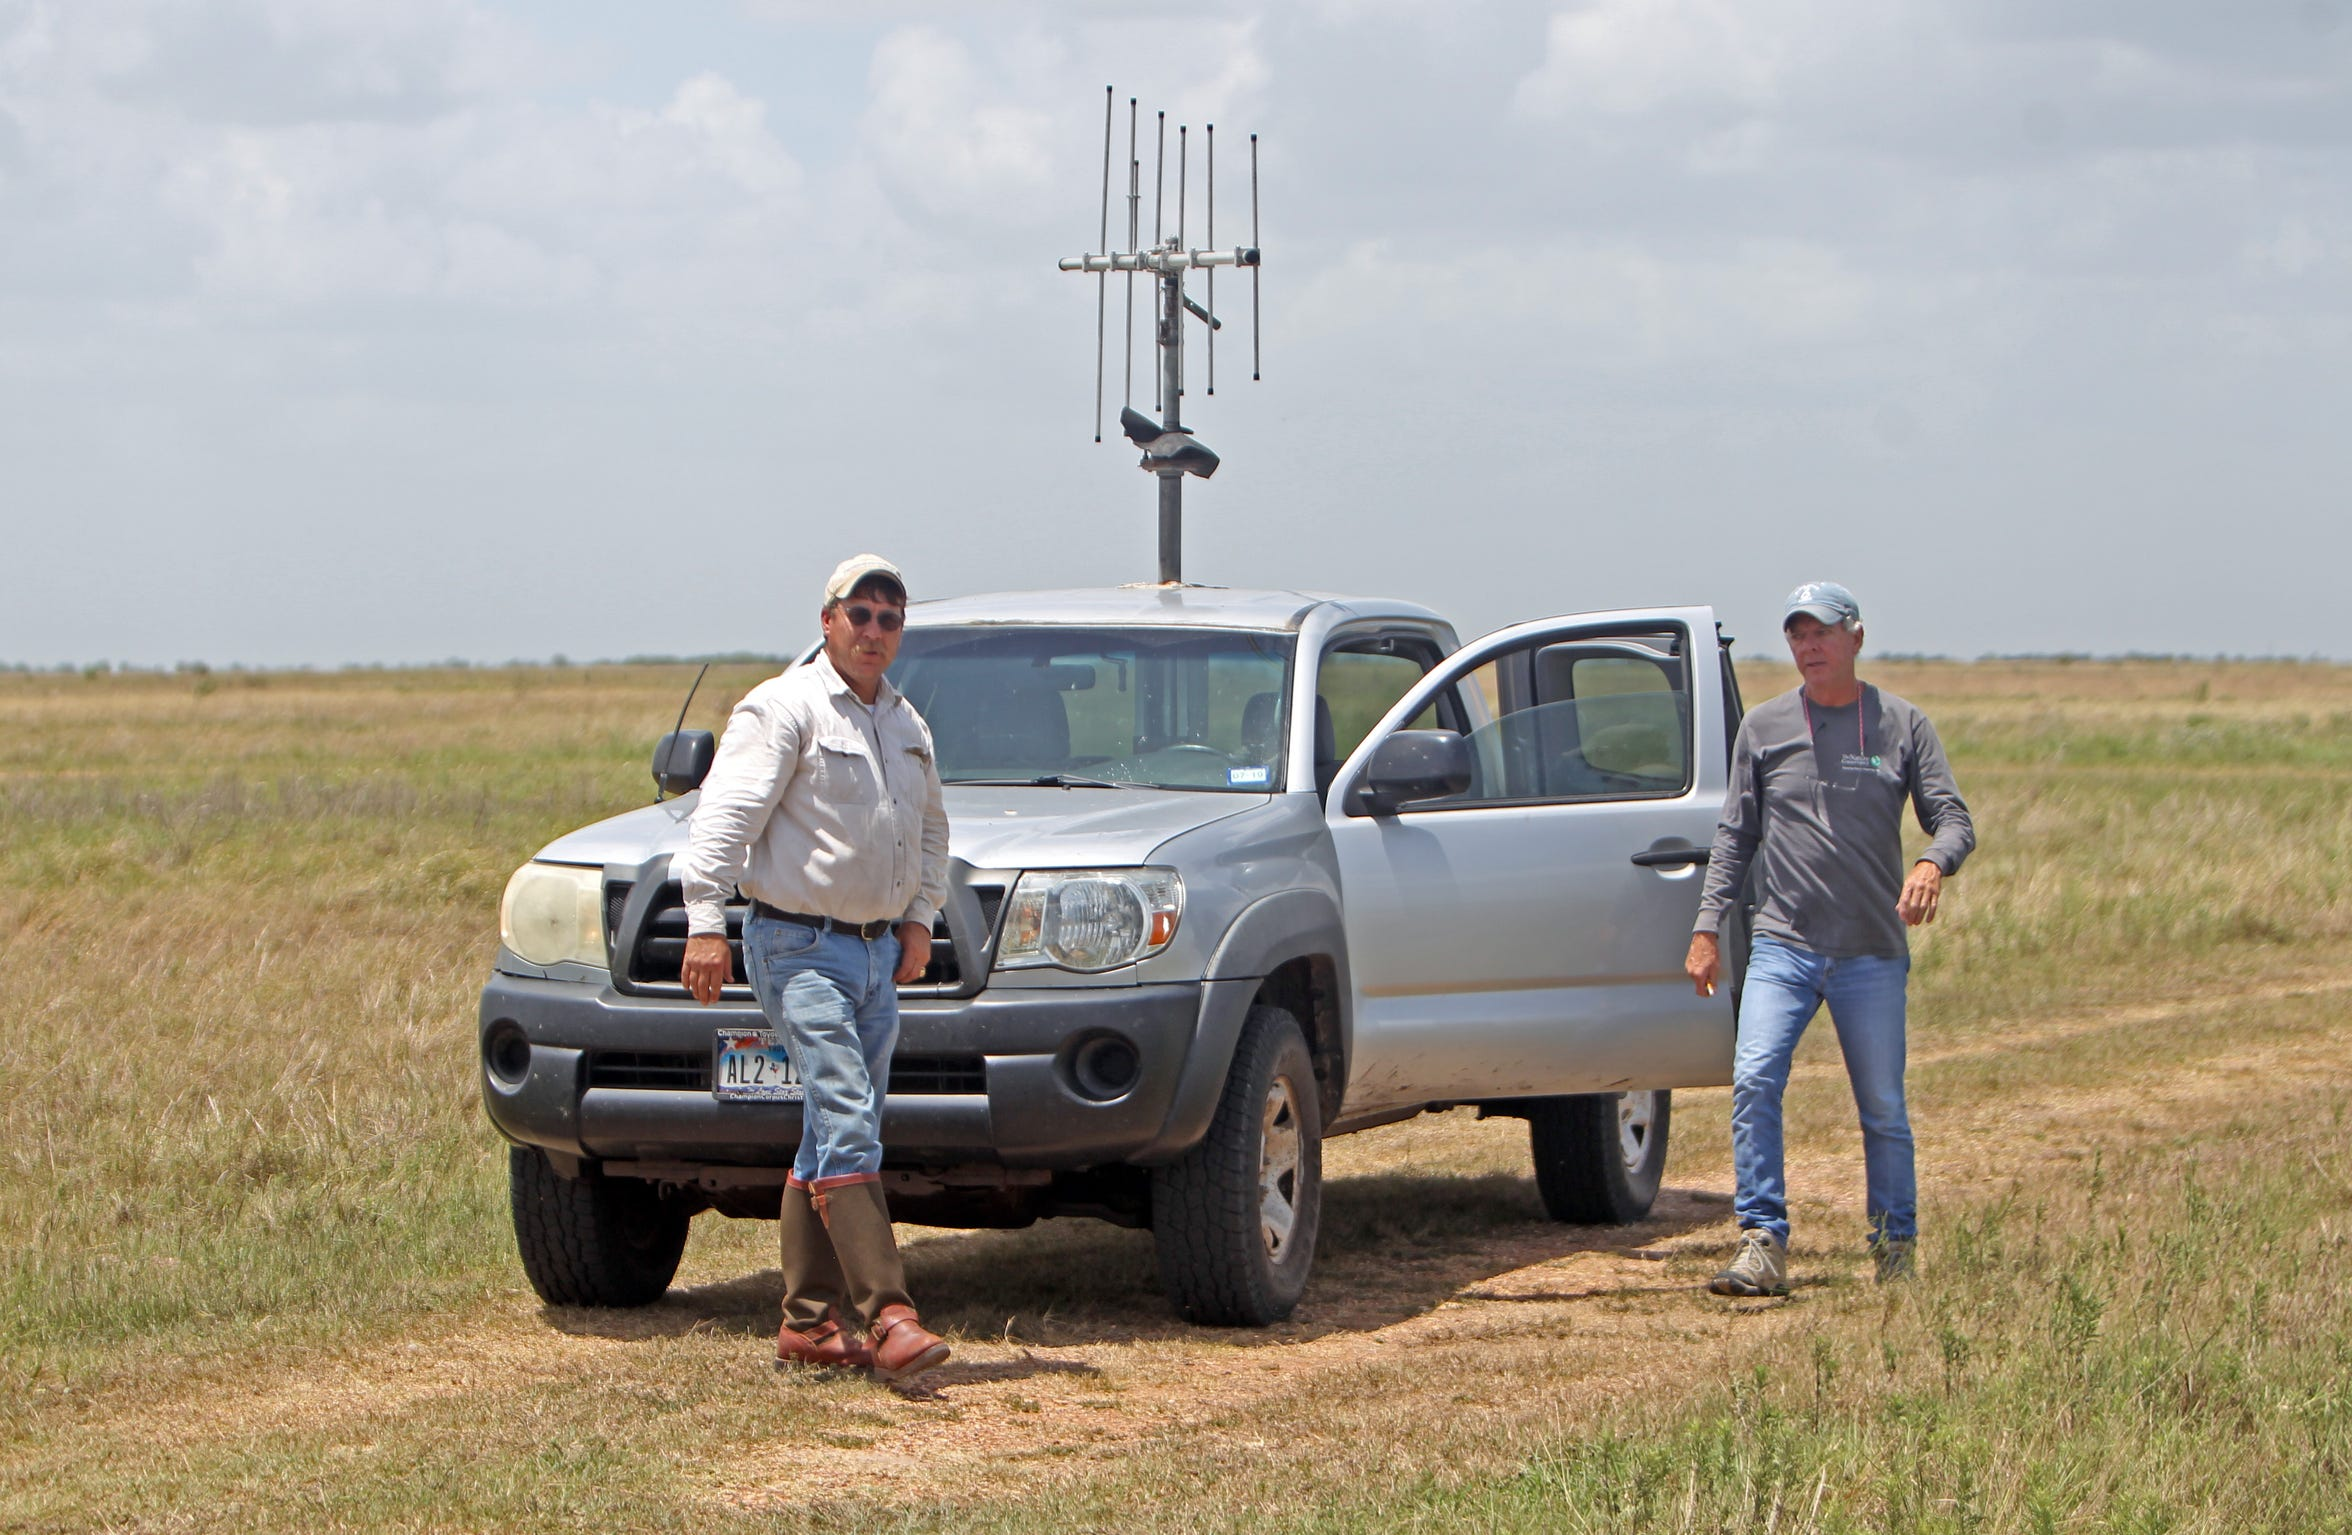 The Nature Conservancy's Kirk Feuerbacher, on left, has worked since 1997 to prepare the prairie and garner participation from ranchers, while Jay Kelso, on right, is the conservancy's Attwater Prairie Chicken savant, who works with the Goliad prairie chickens in the field almost daily.